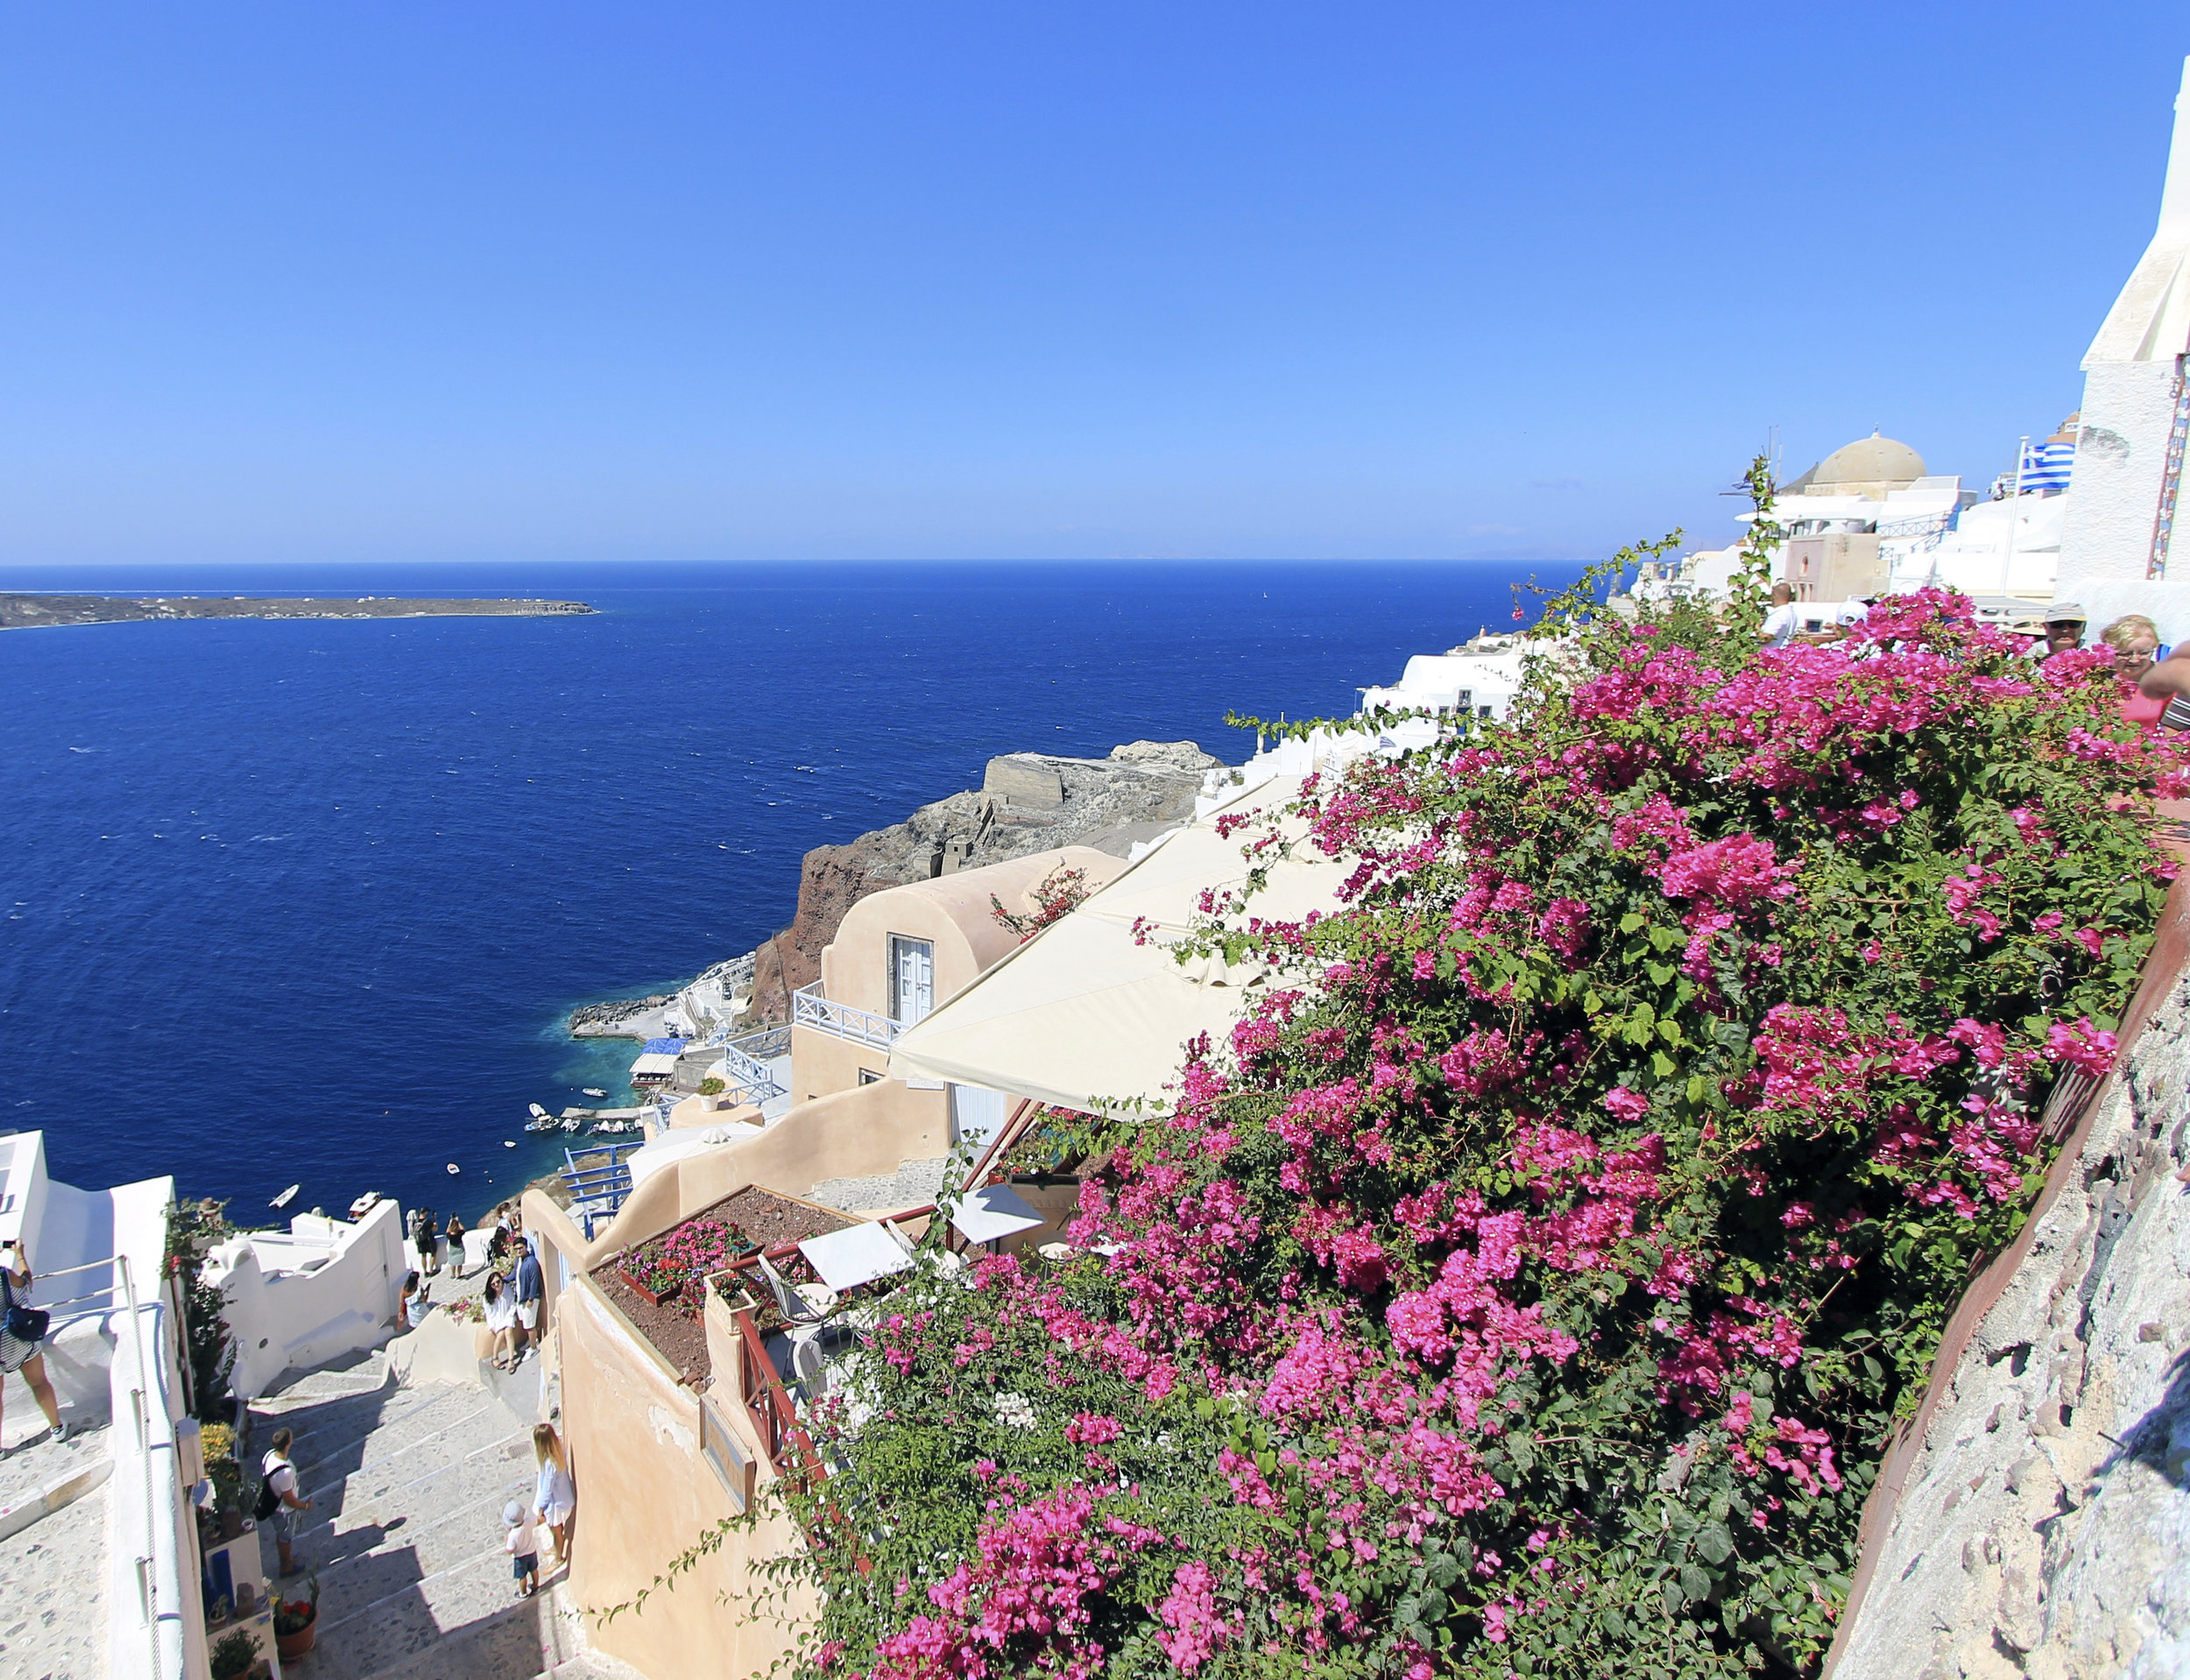 beautiful blues pinks santorini oia bougainvillea flowers.jpg